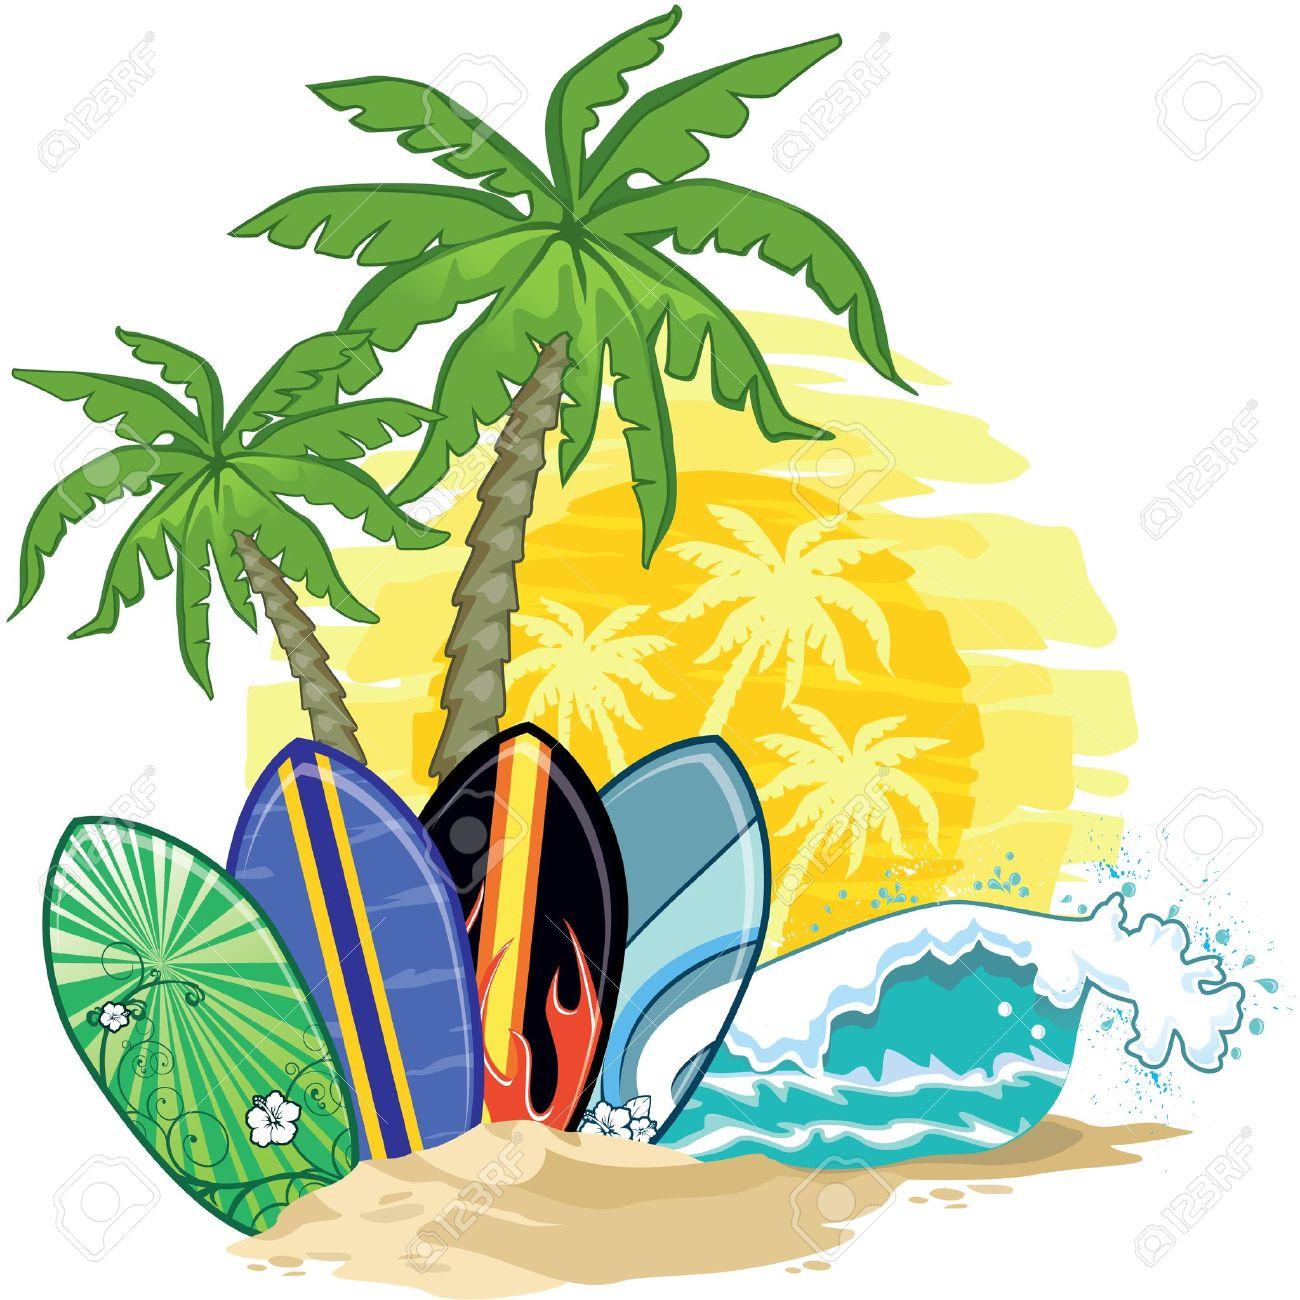 Surfboard Clipart | Free download best Surfboard Clipart on ...